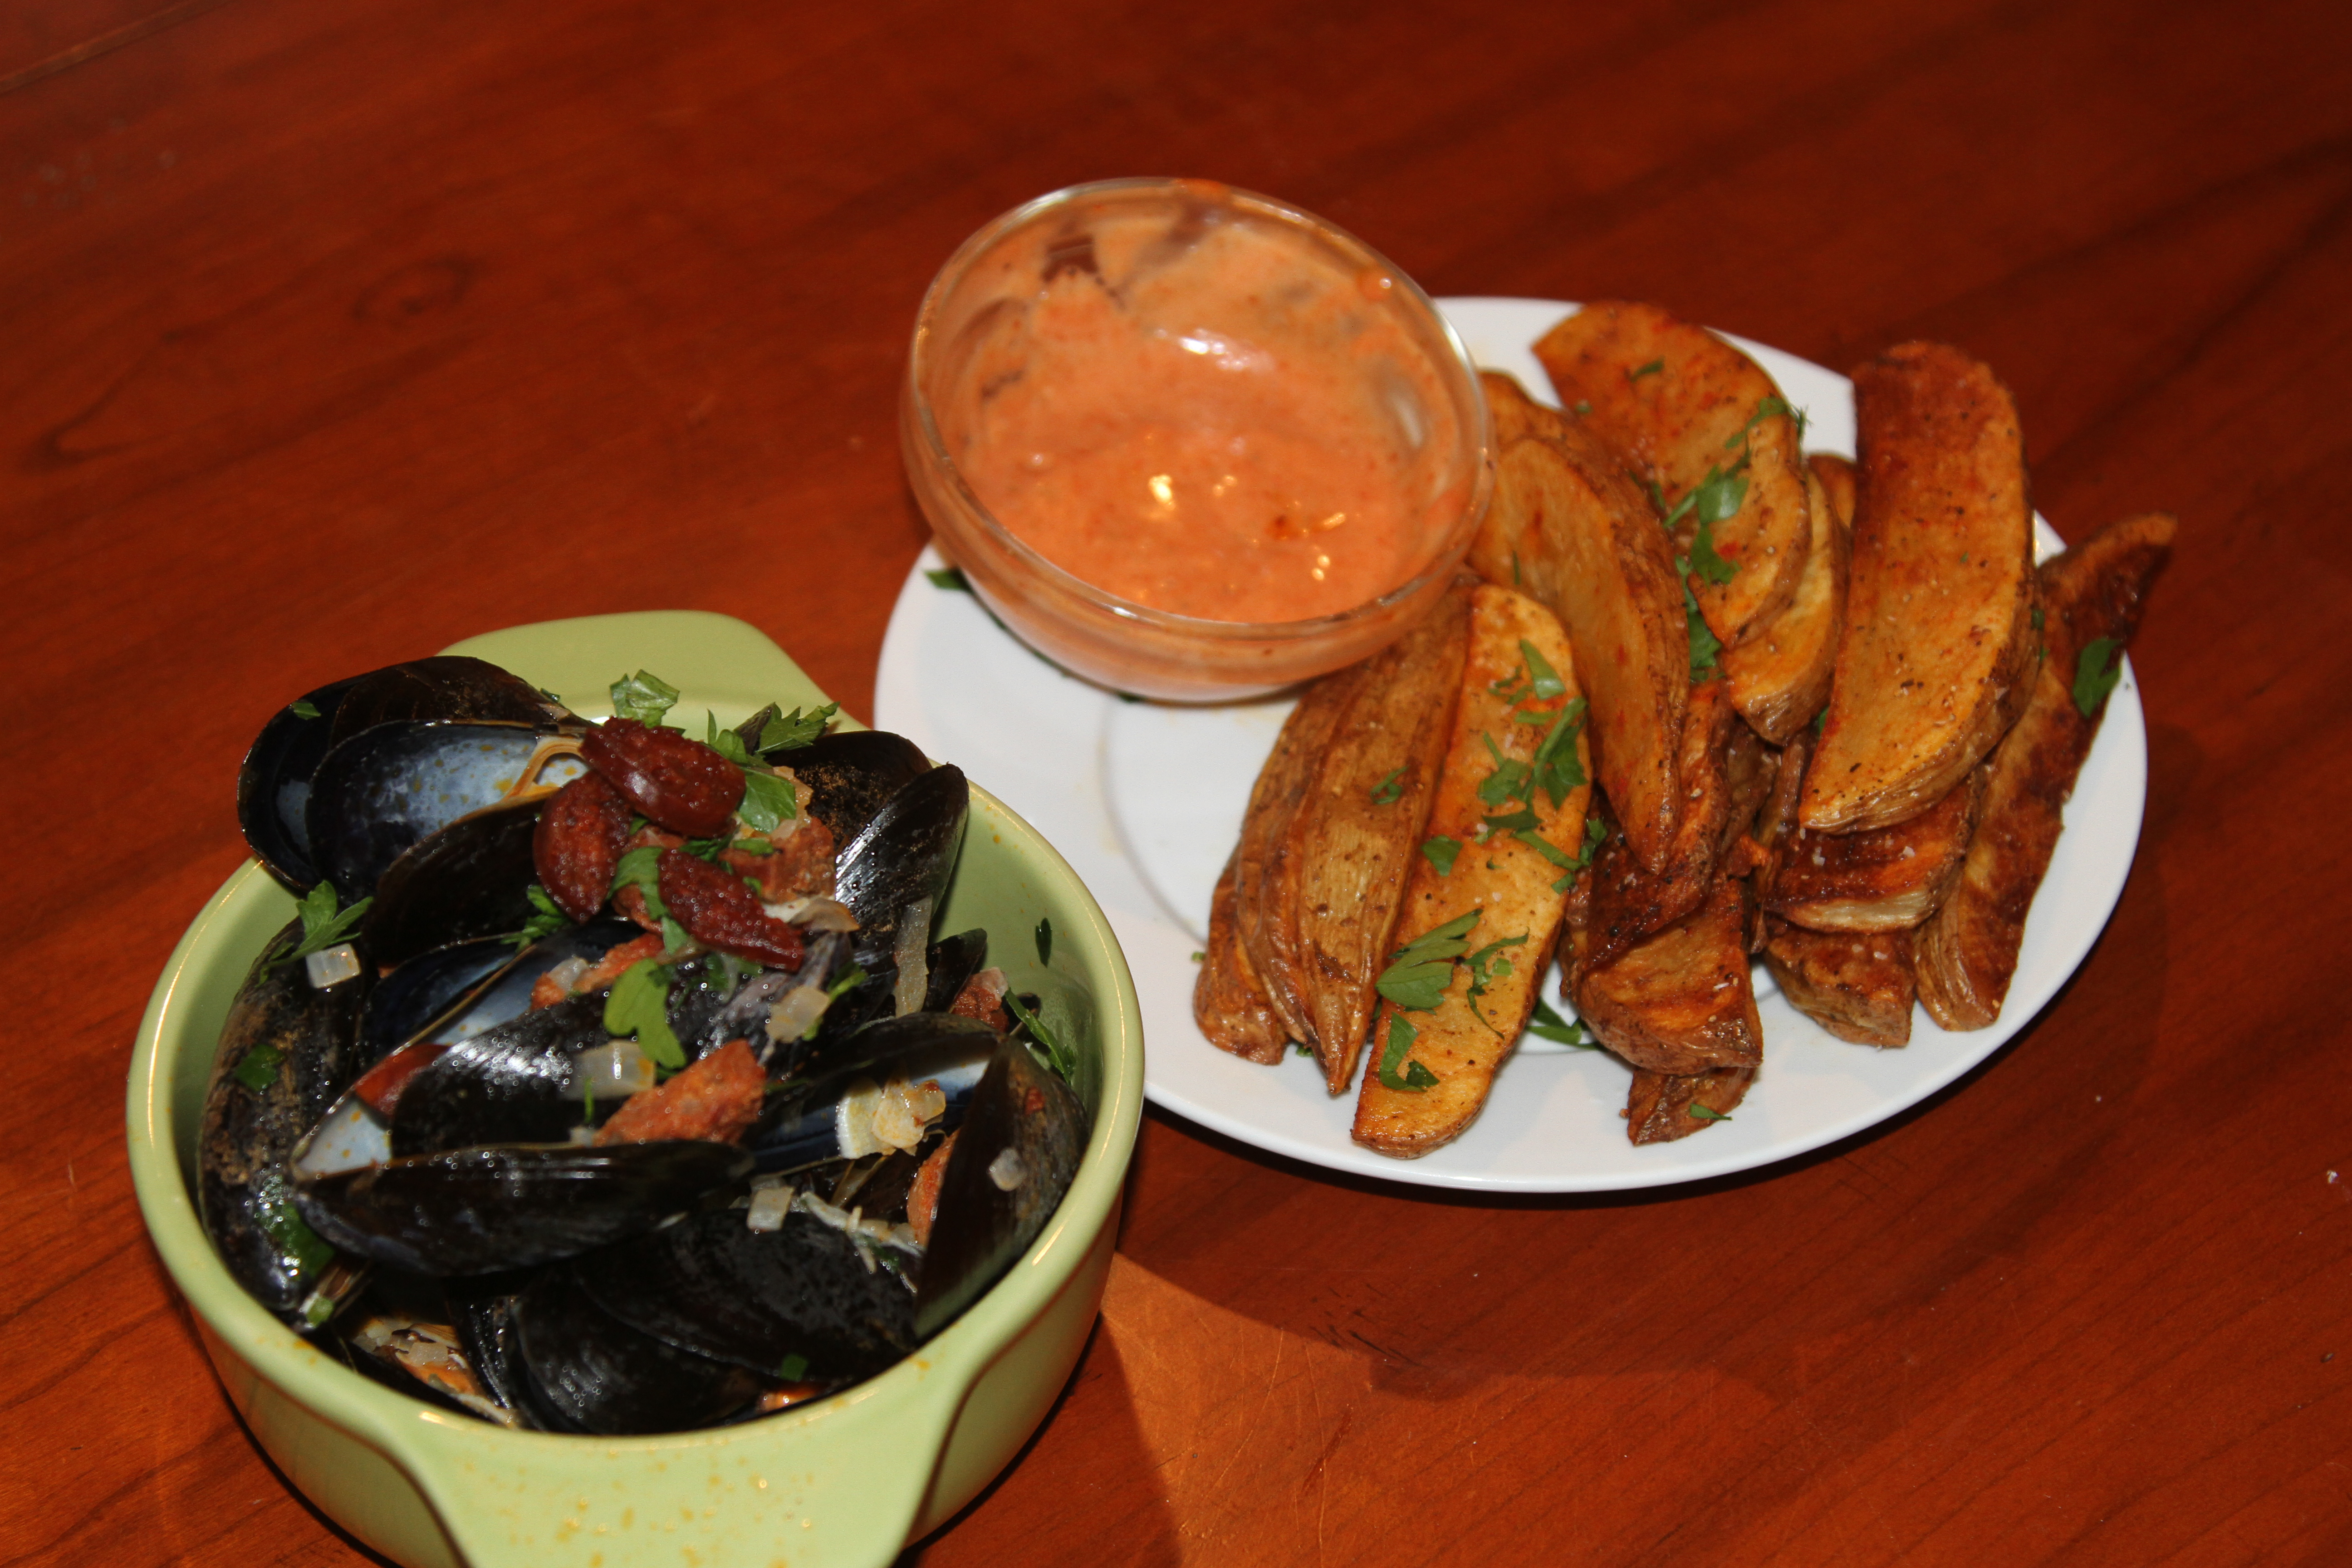 P.E.I. Mussels w/ Chorizo & Crispy Oven Baked Fries w/ Sweet & Spicy Dipping Sauce